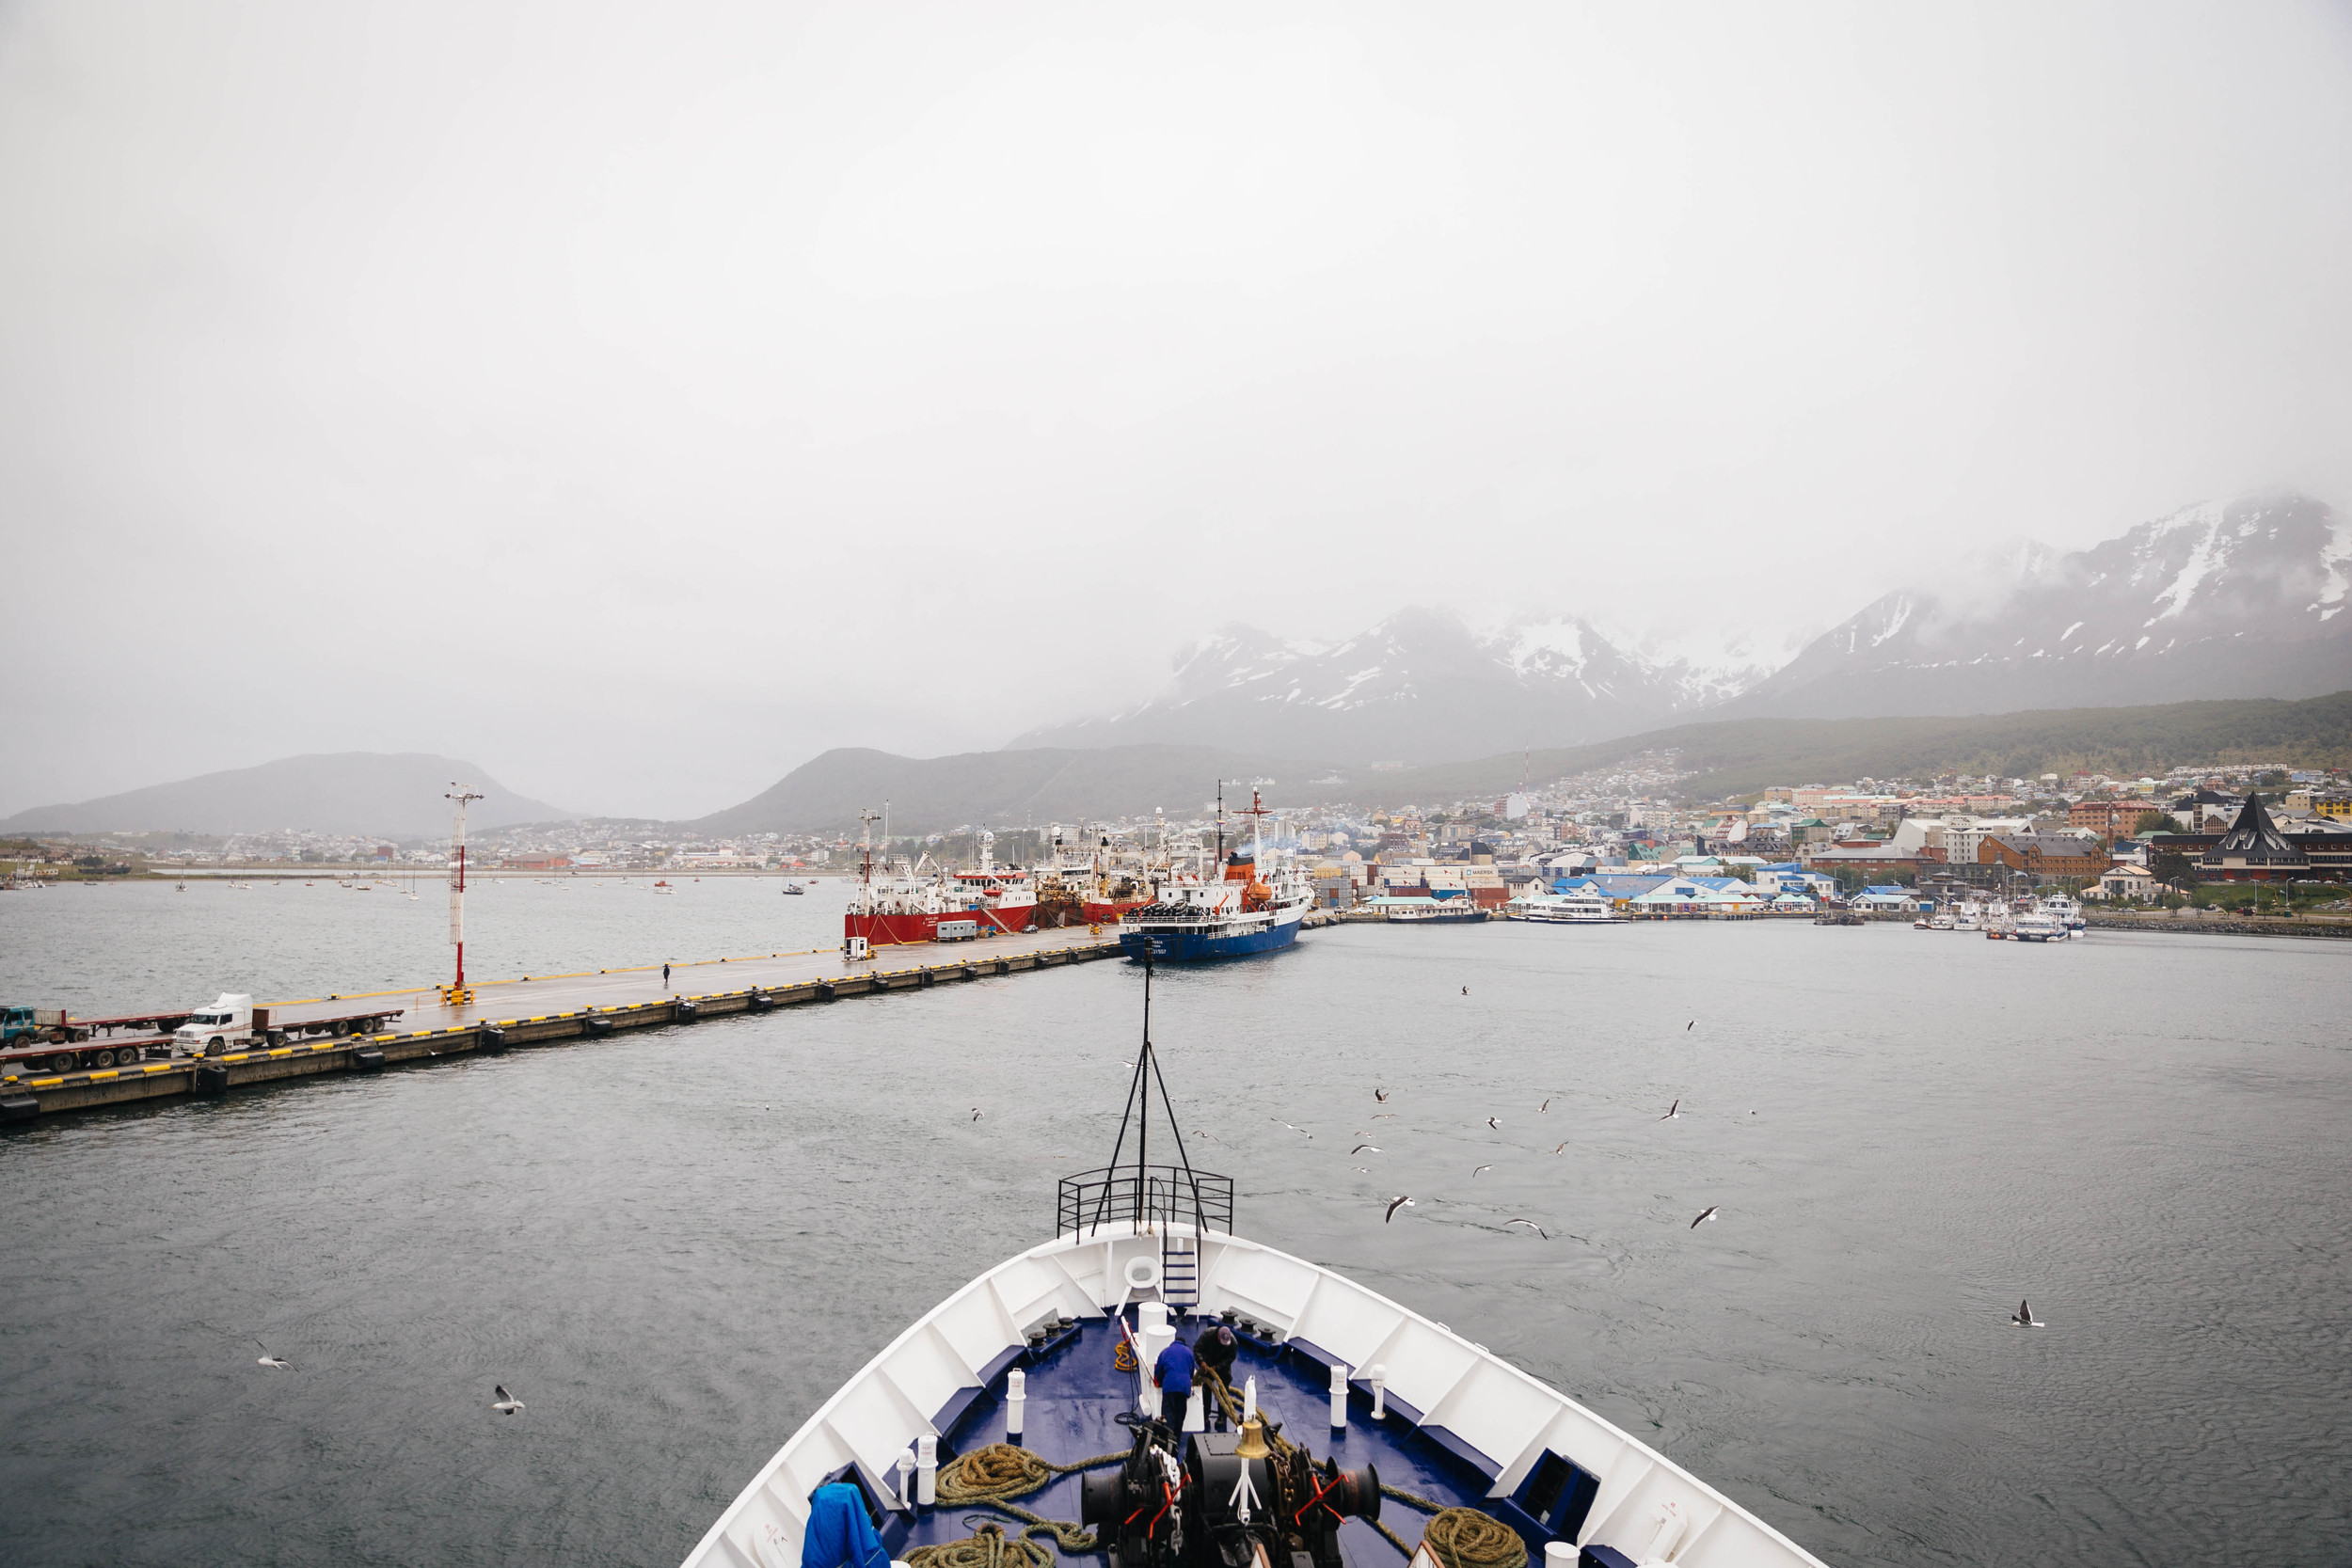 The M/V Sea Adventurer leaving the port of Ushuaia behind, heading south to Antarctica.